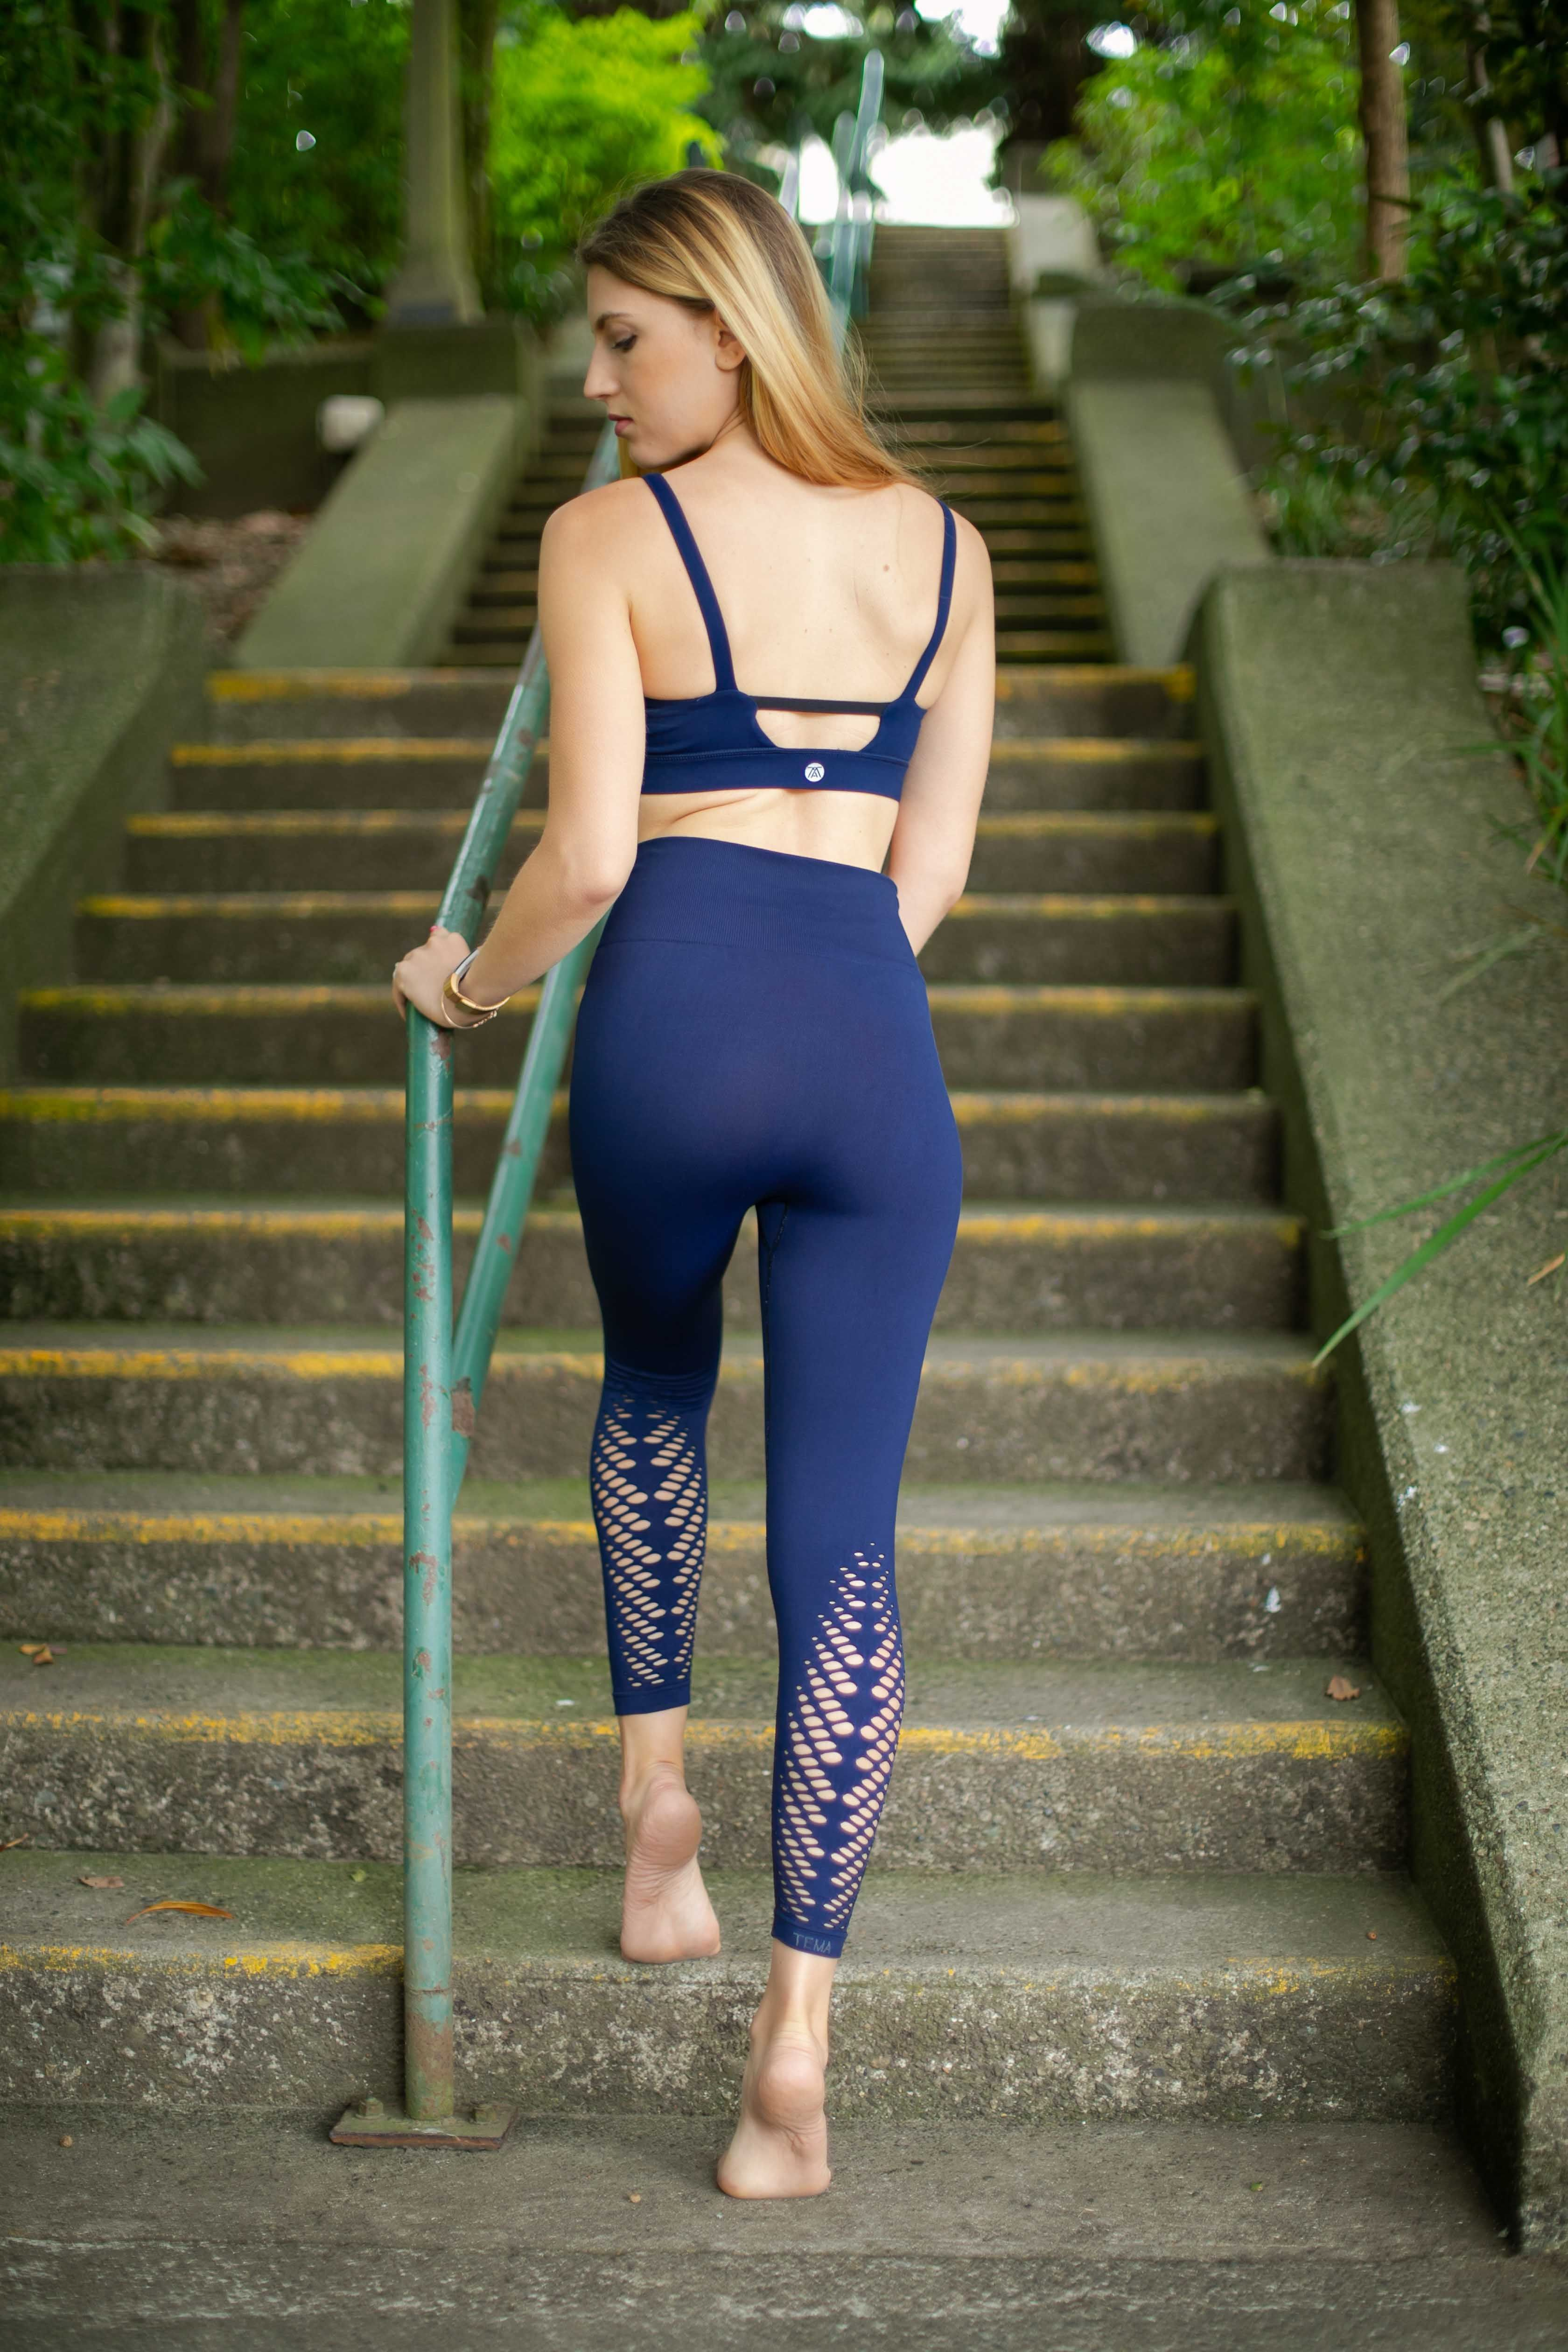 339908c5cea409 Beautifully crafted seamless leaf pattern leggings are a great piece for  your Yoga, Barre or Gym activities. High waist with compression that gives  you a ...